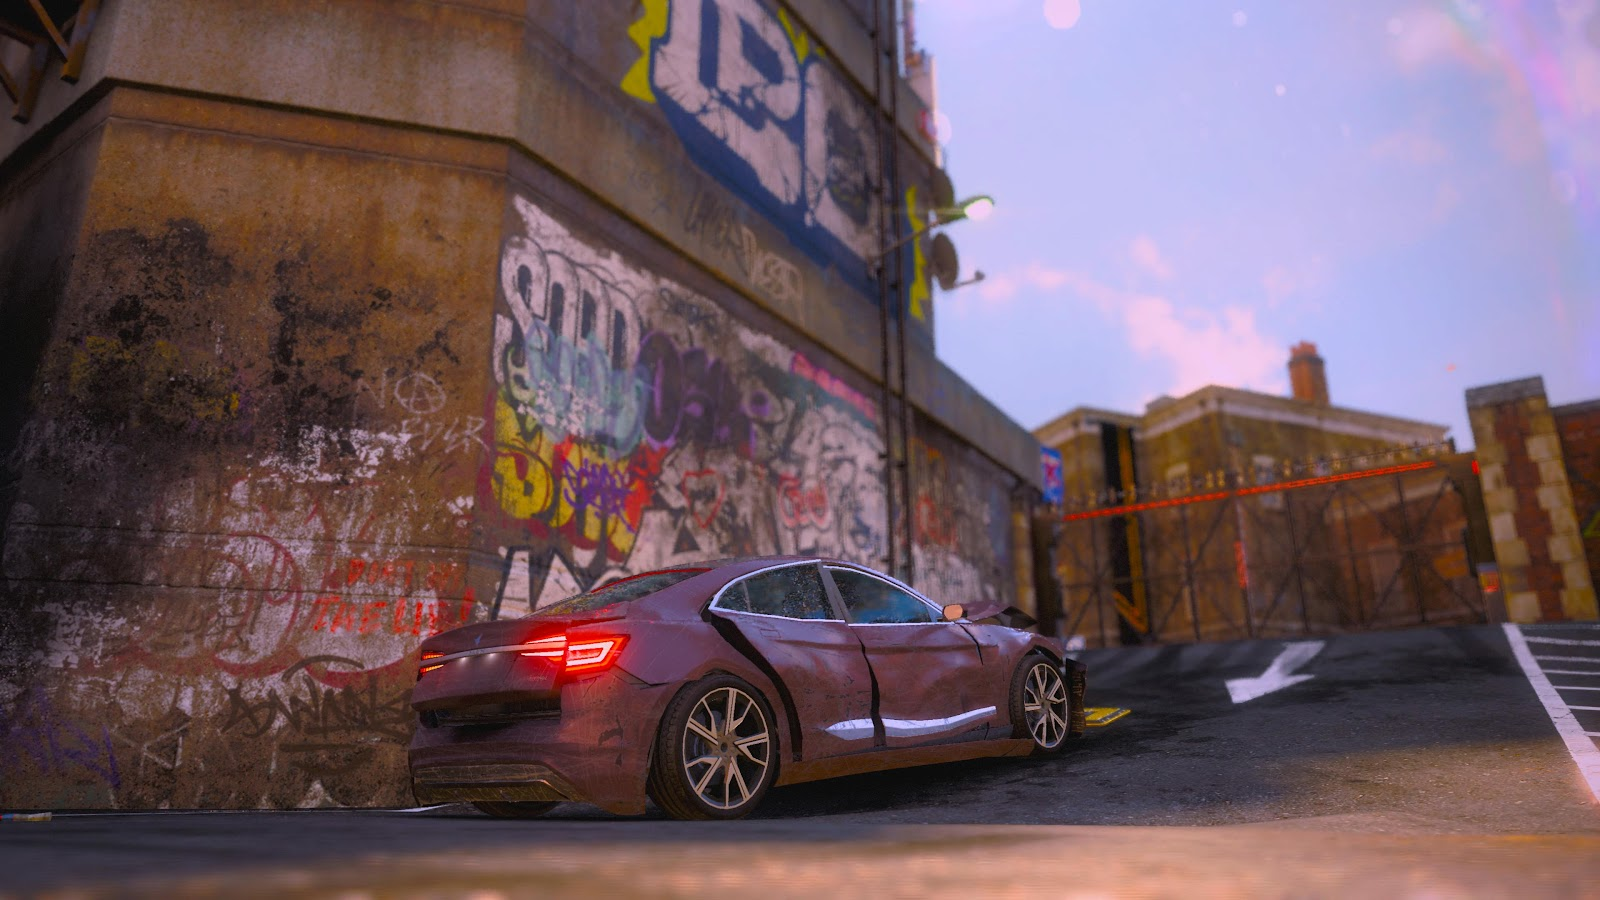 A crashed up car beside a brick wall covered in graffiti.